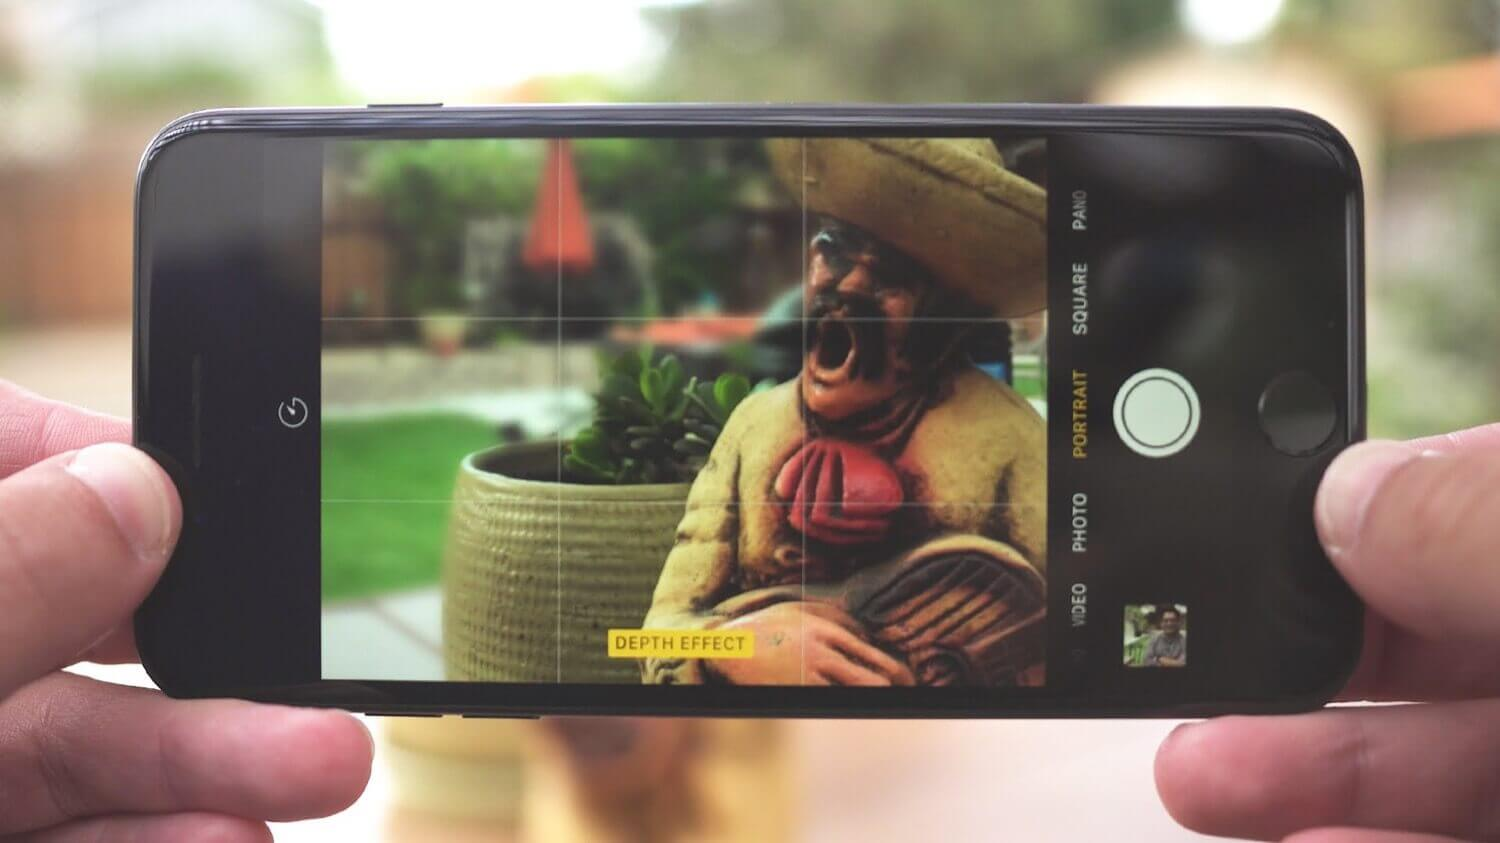 iphone-photography-tips-and-tricks-photo-editing-example